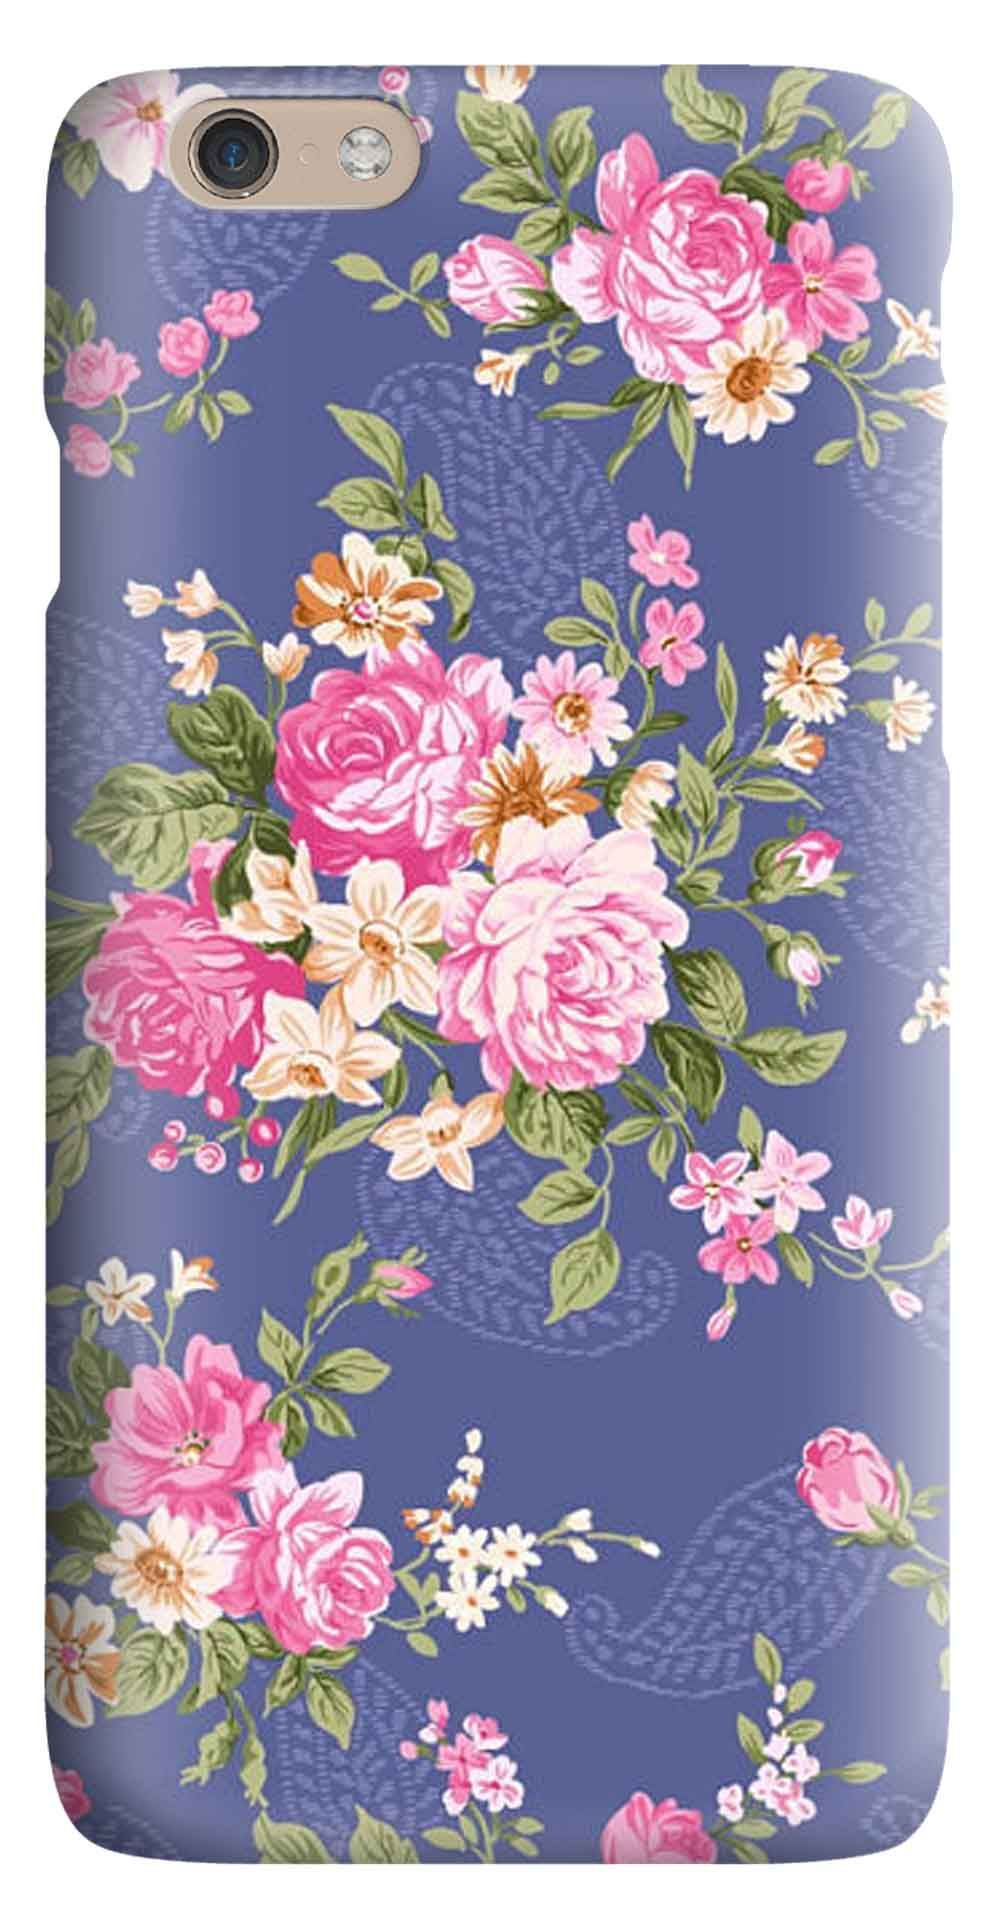 Whatskin DIY Style Artistic Flowers Series 04 Hard Back Cover for iphone 6